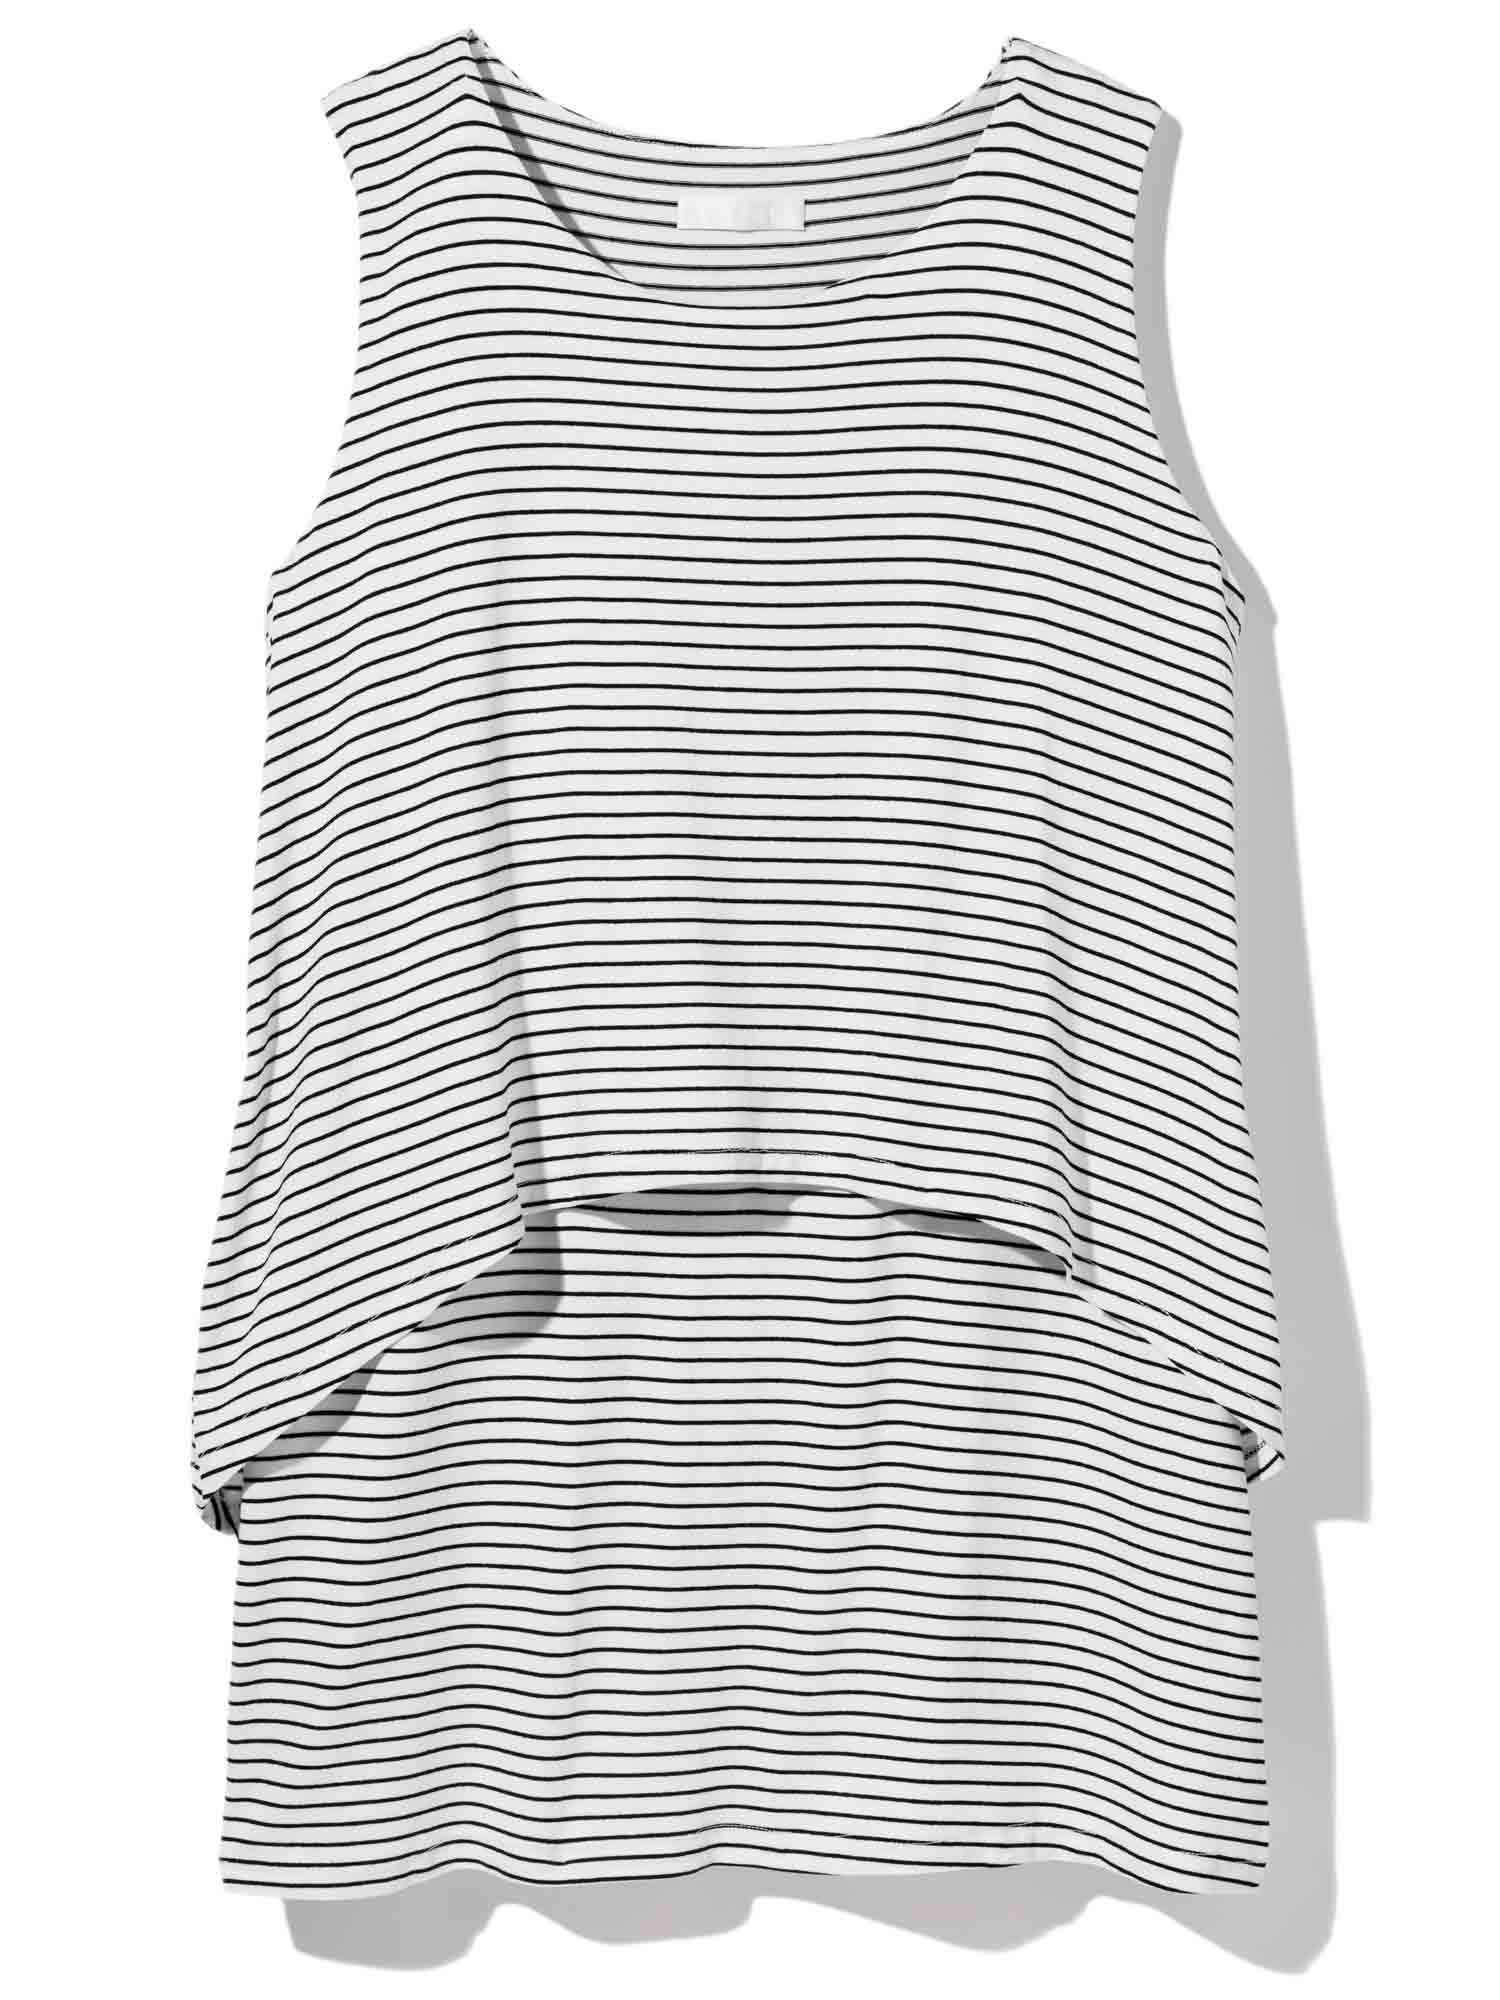 AU LAIT WHITE TOP WITH THIN BLACK STRIPES Mother's Day Gift GuideEllie Kemper